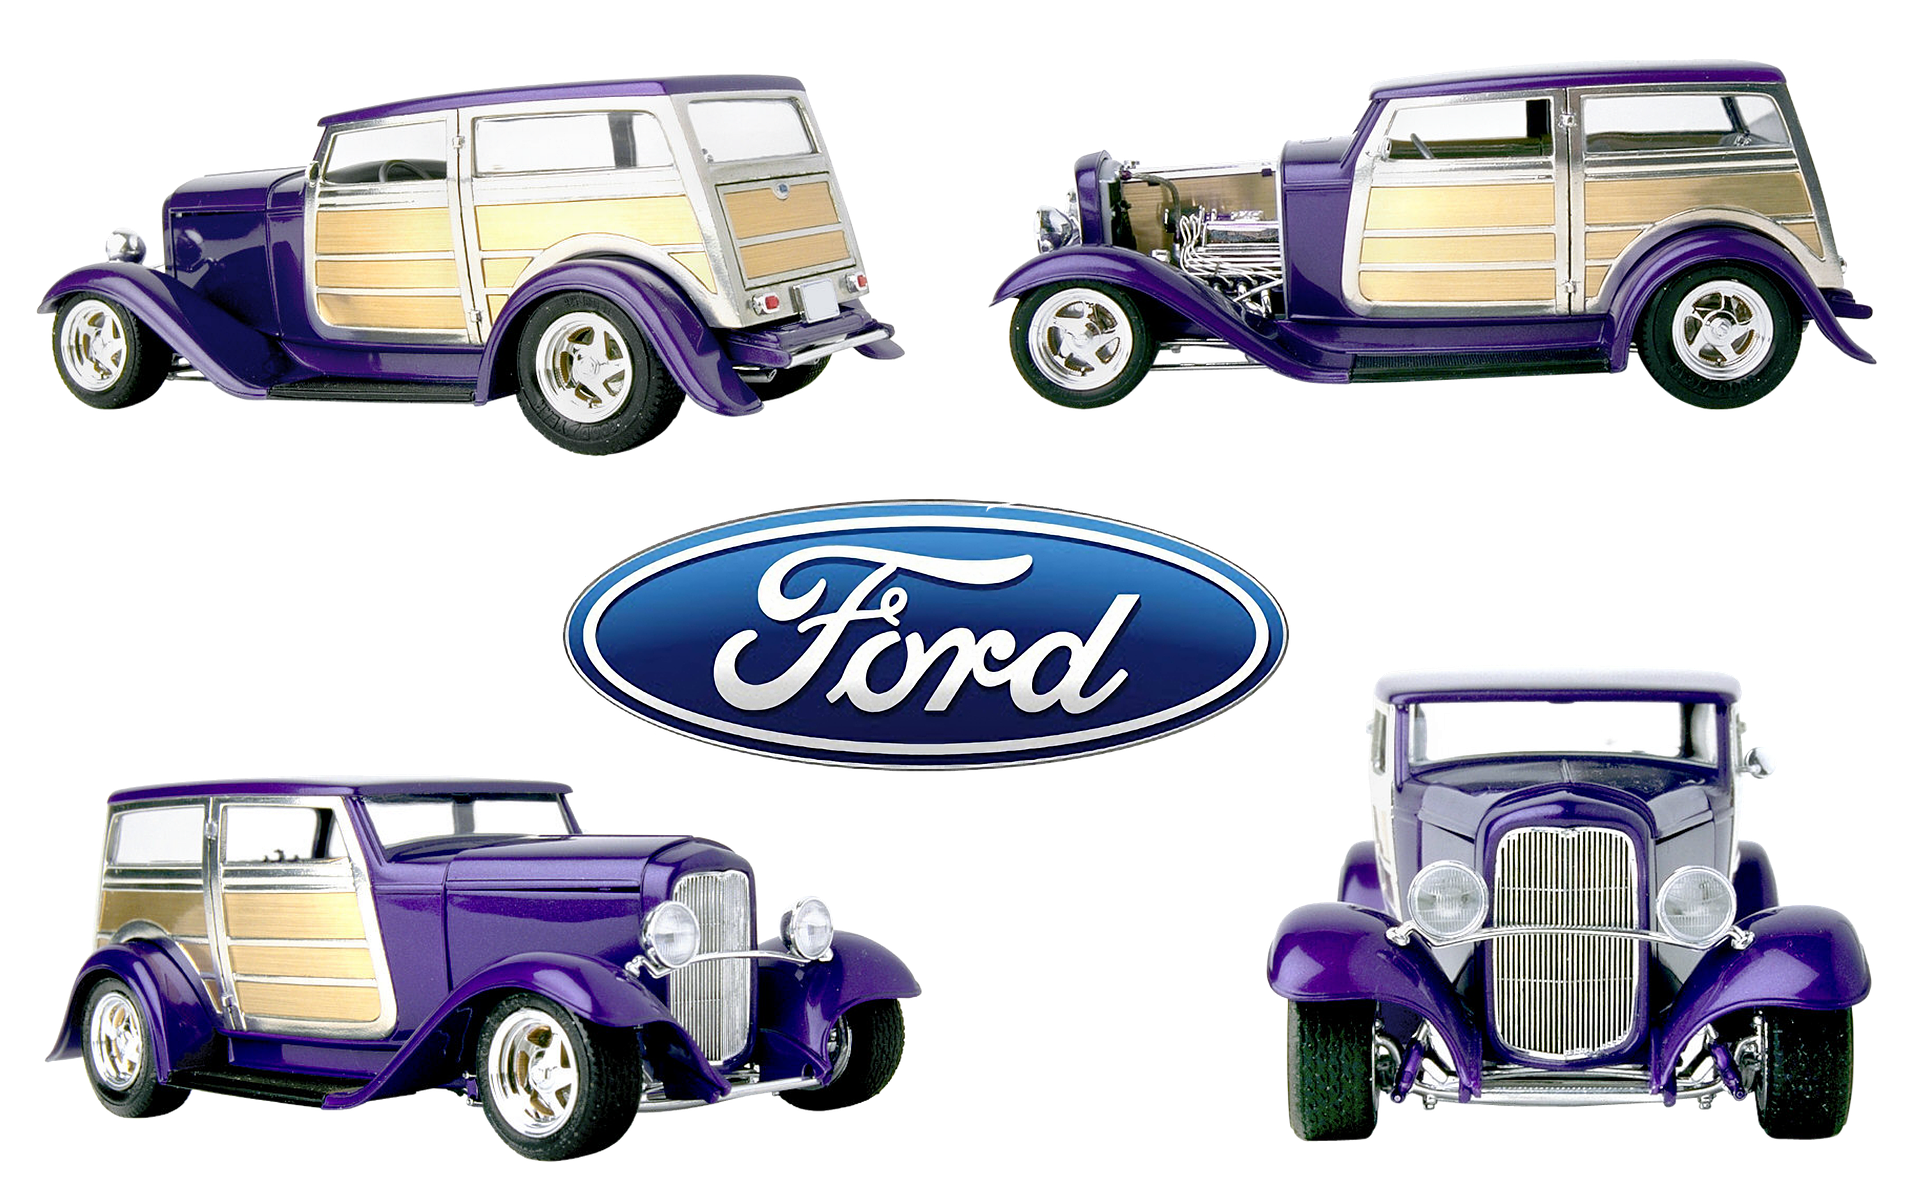 Free photo: Old Ford Car - transport, truck, ride - Creative Commons ...